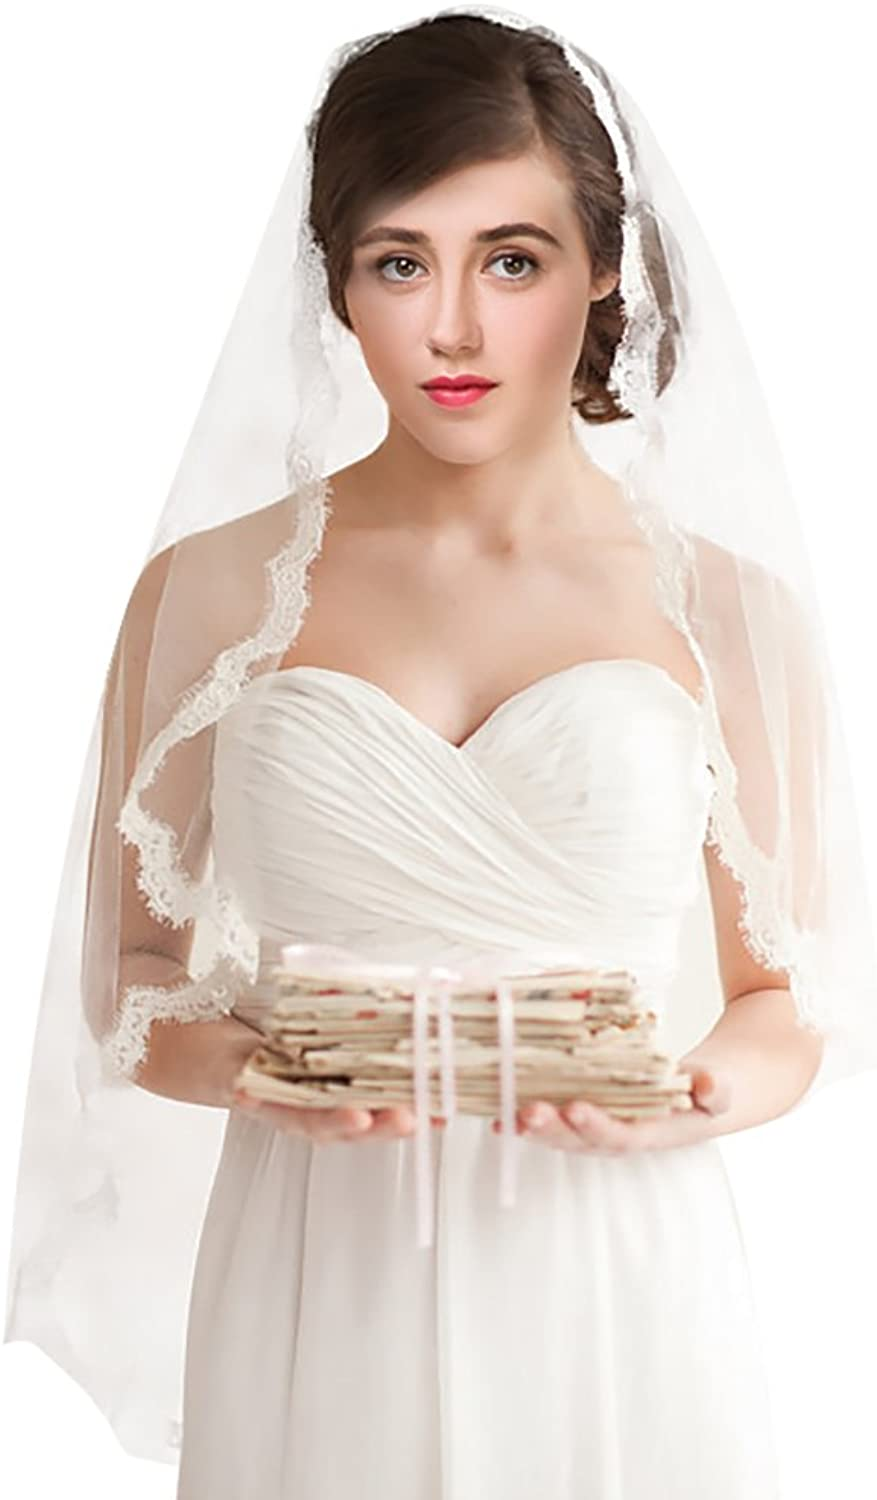 1 Tier Wedding Veil with Comb Lace Edge Ivory White Fingertip Length Short